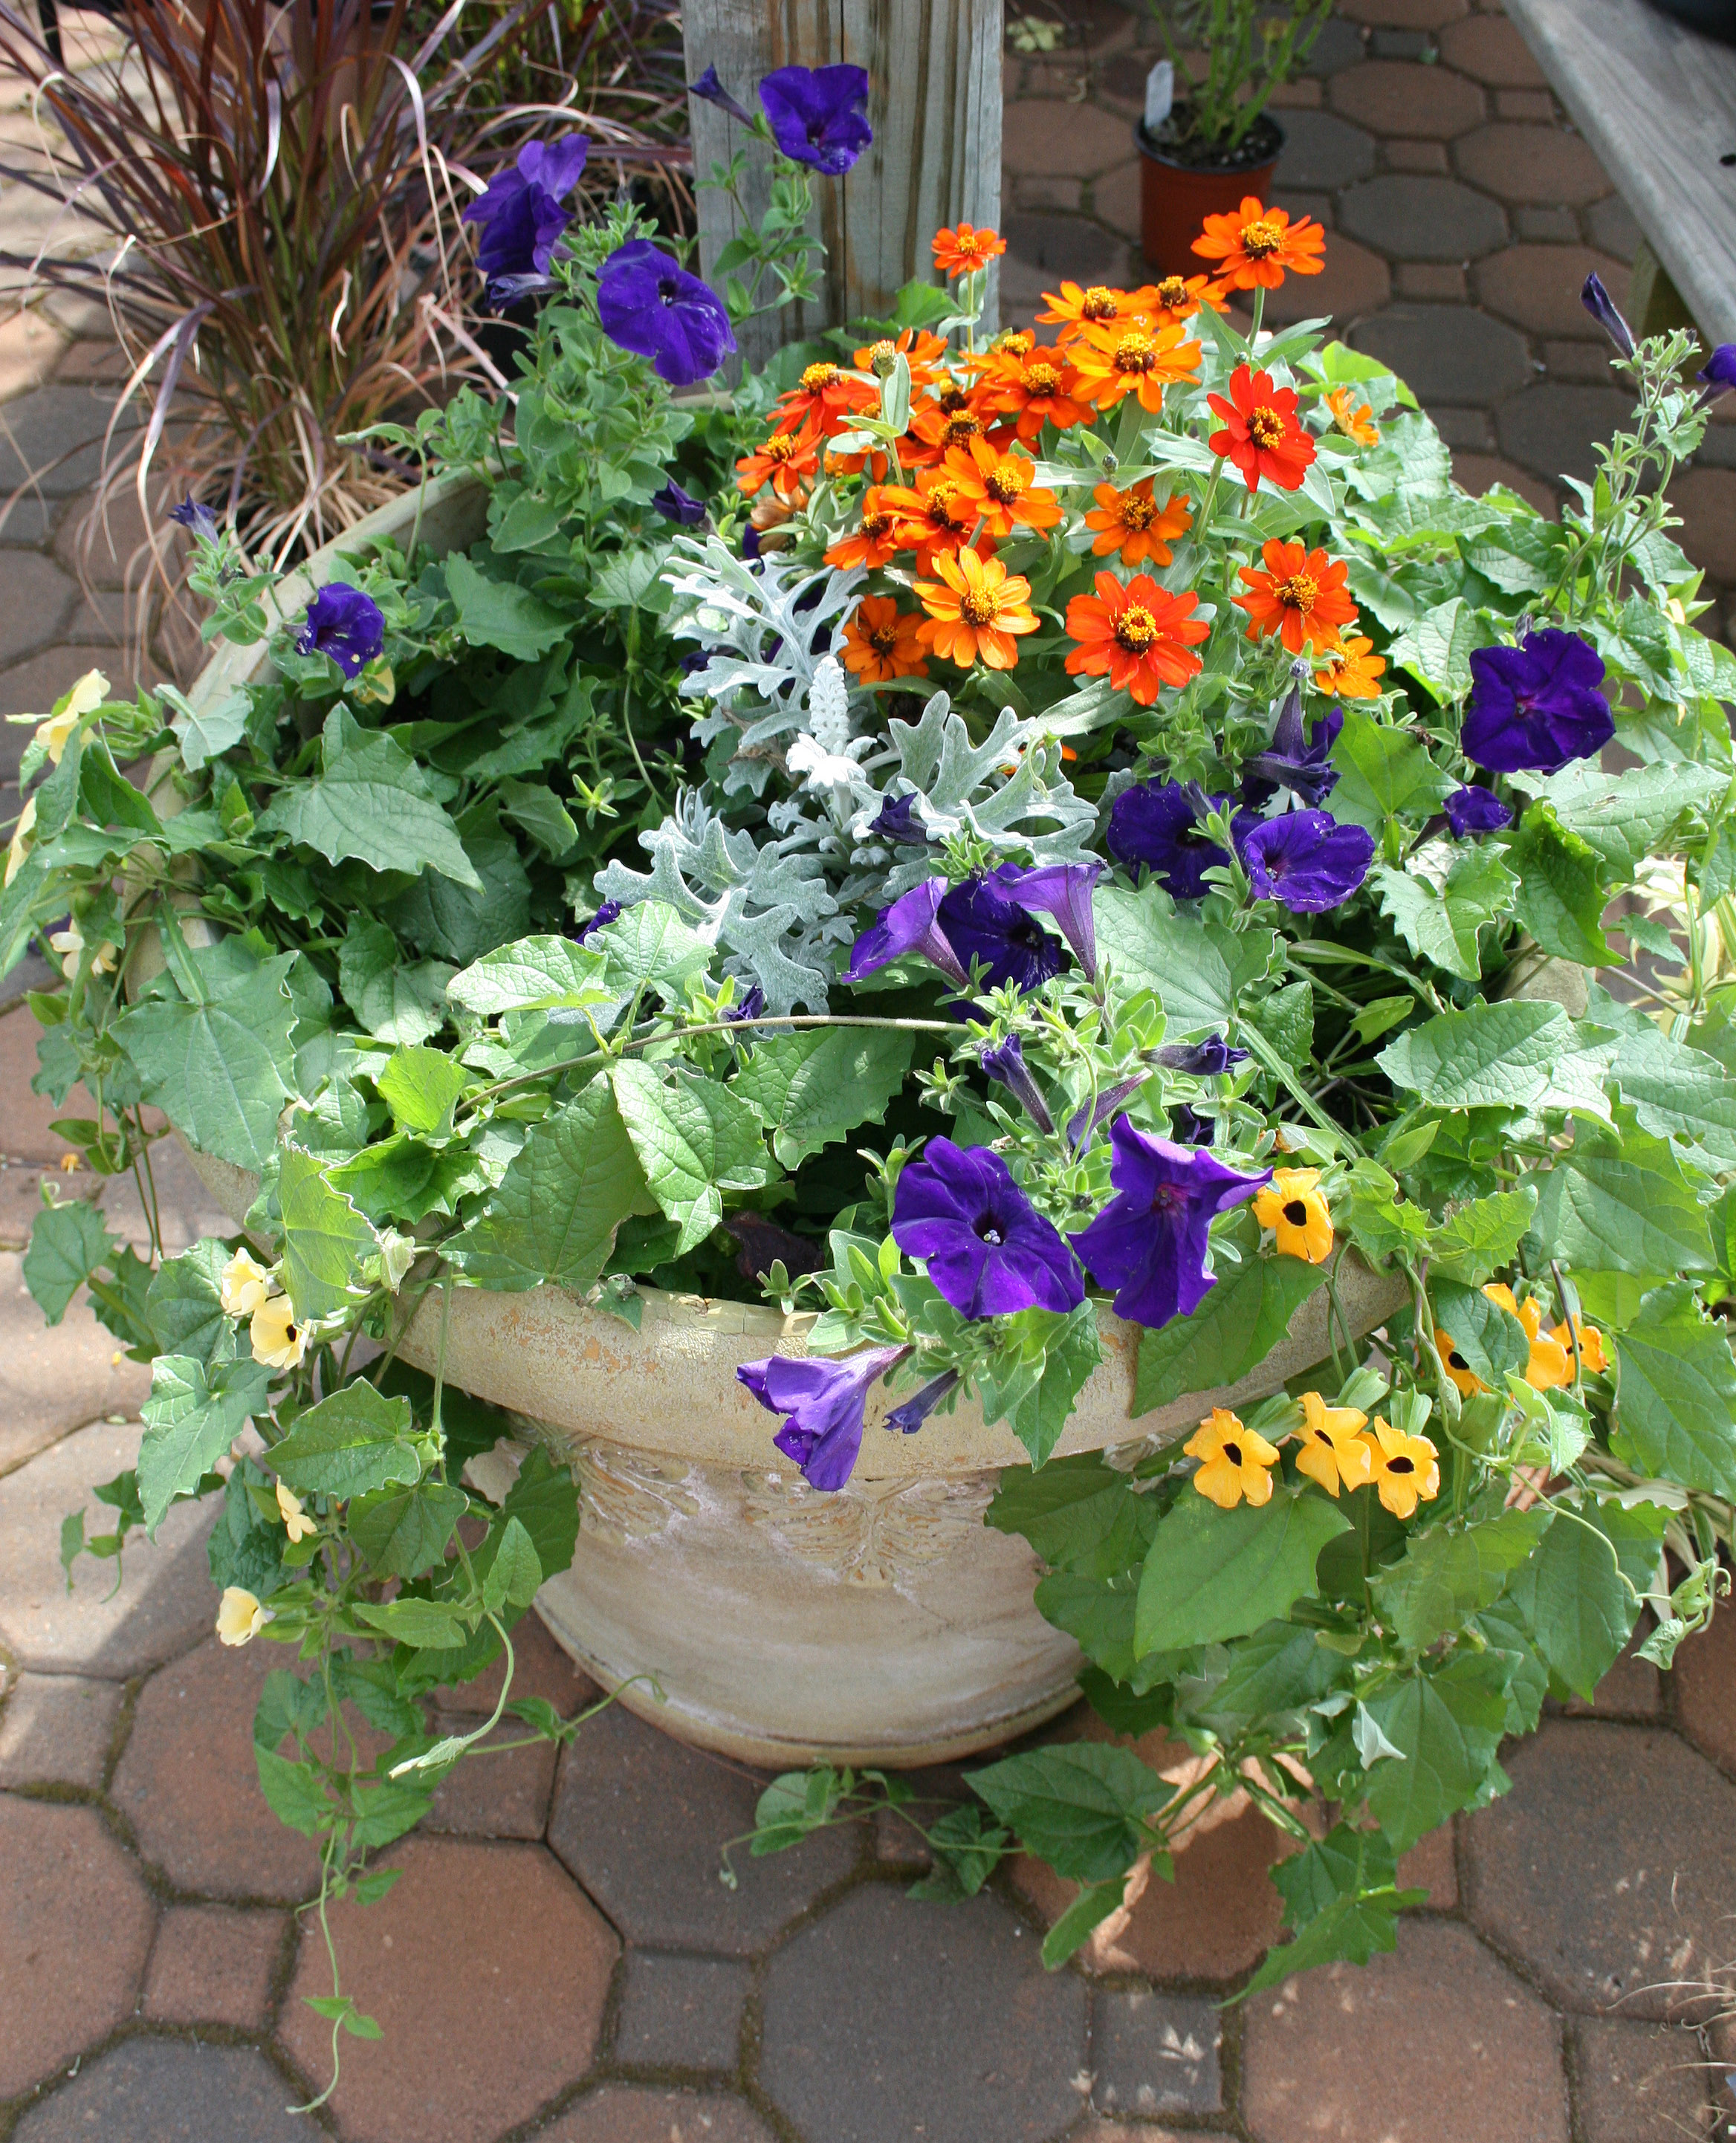 When creating a container garden, University of Georgia experts say remember to add plants of several different textures and heights.